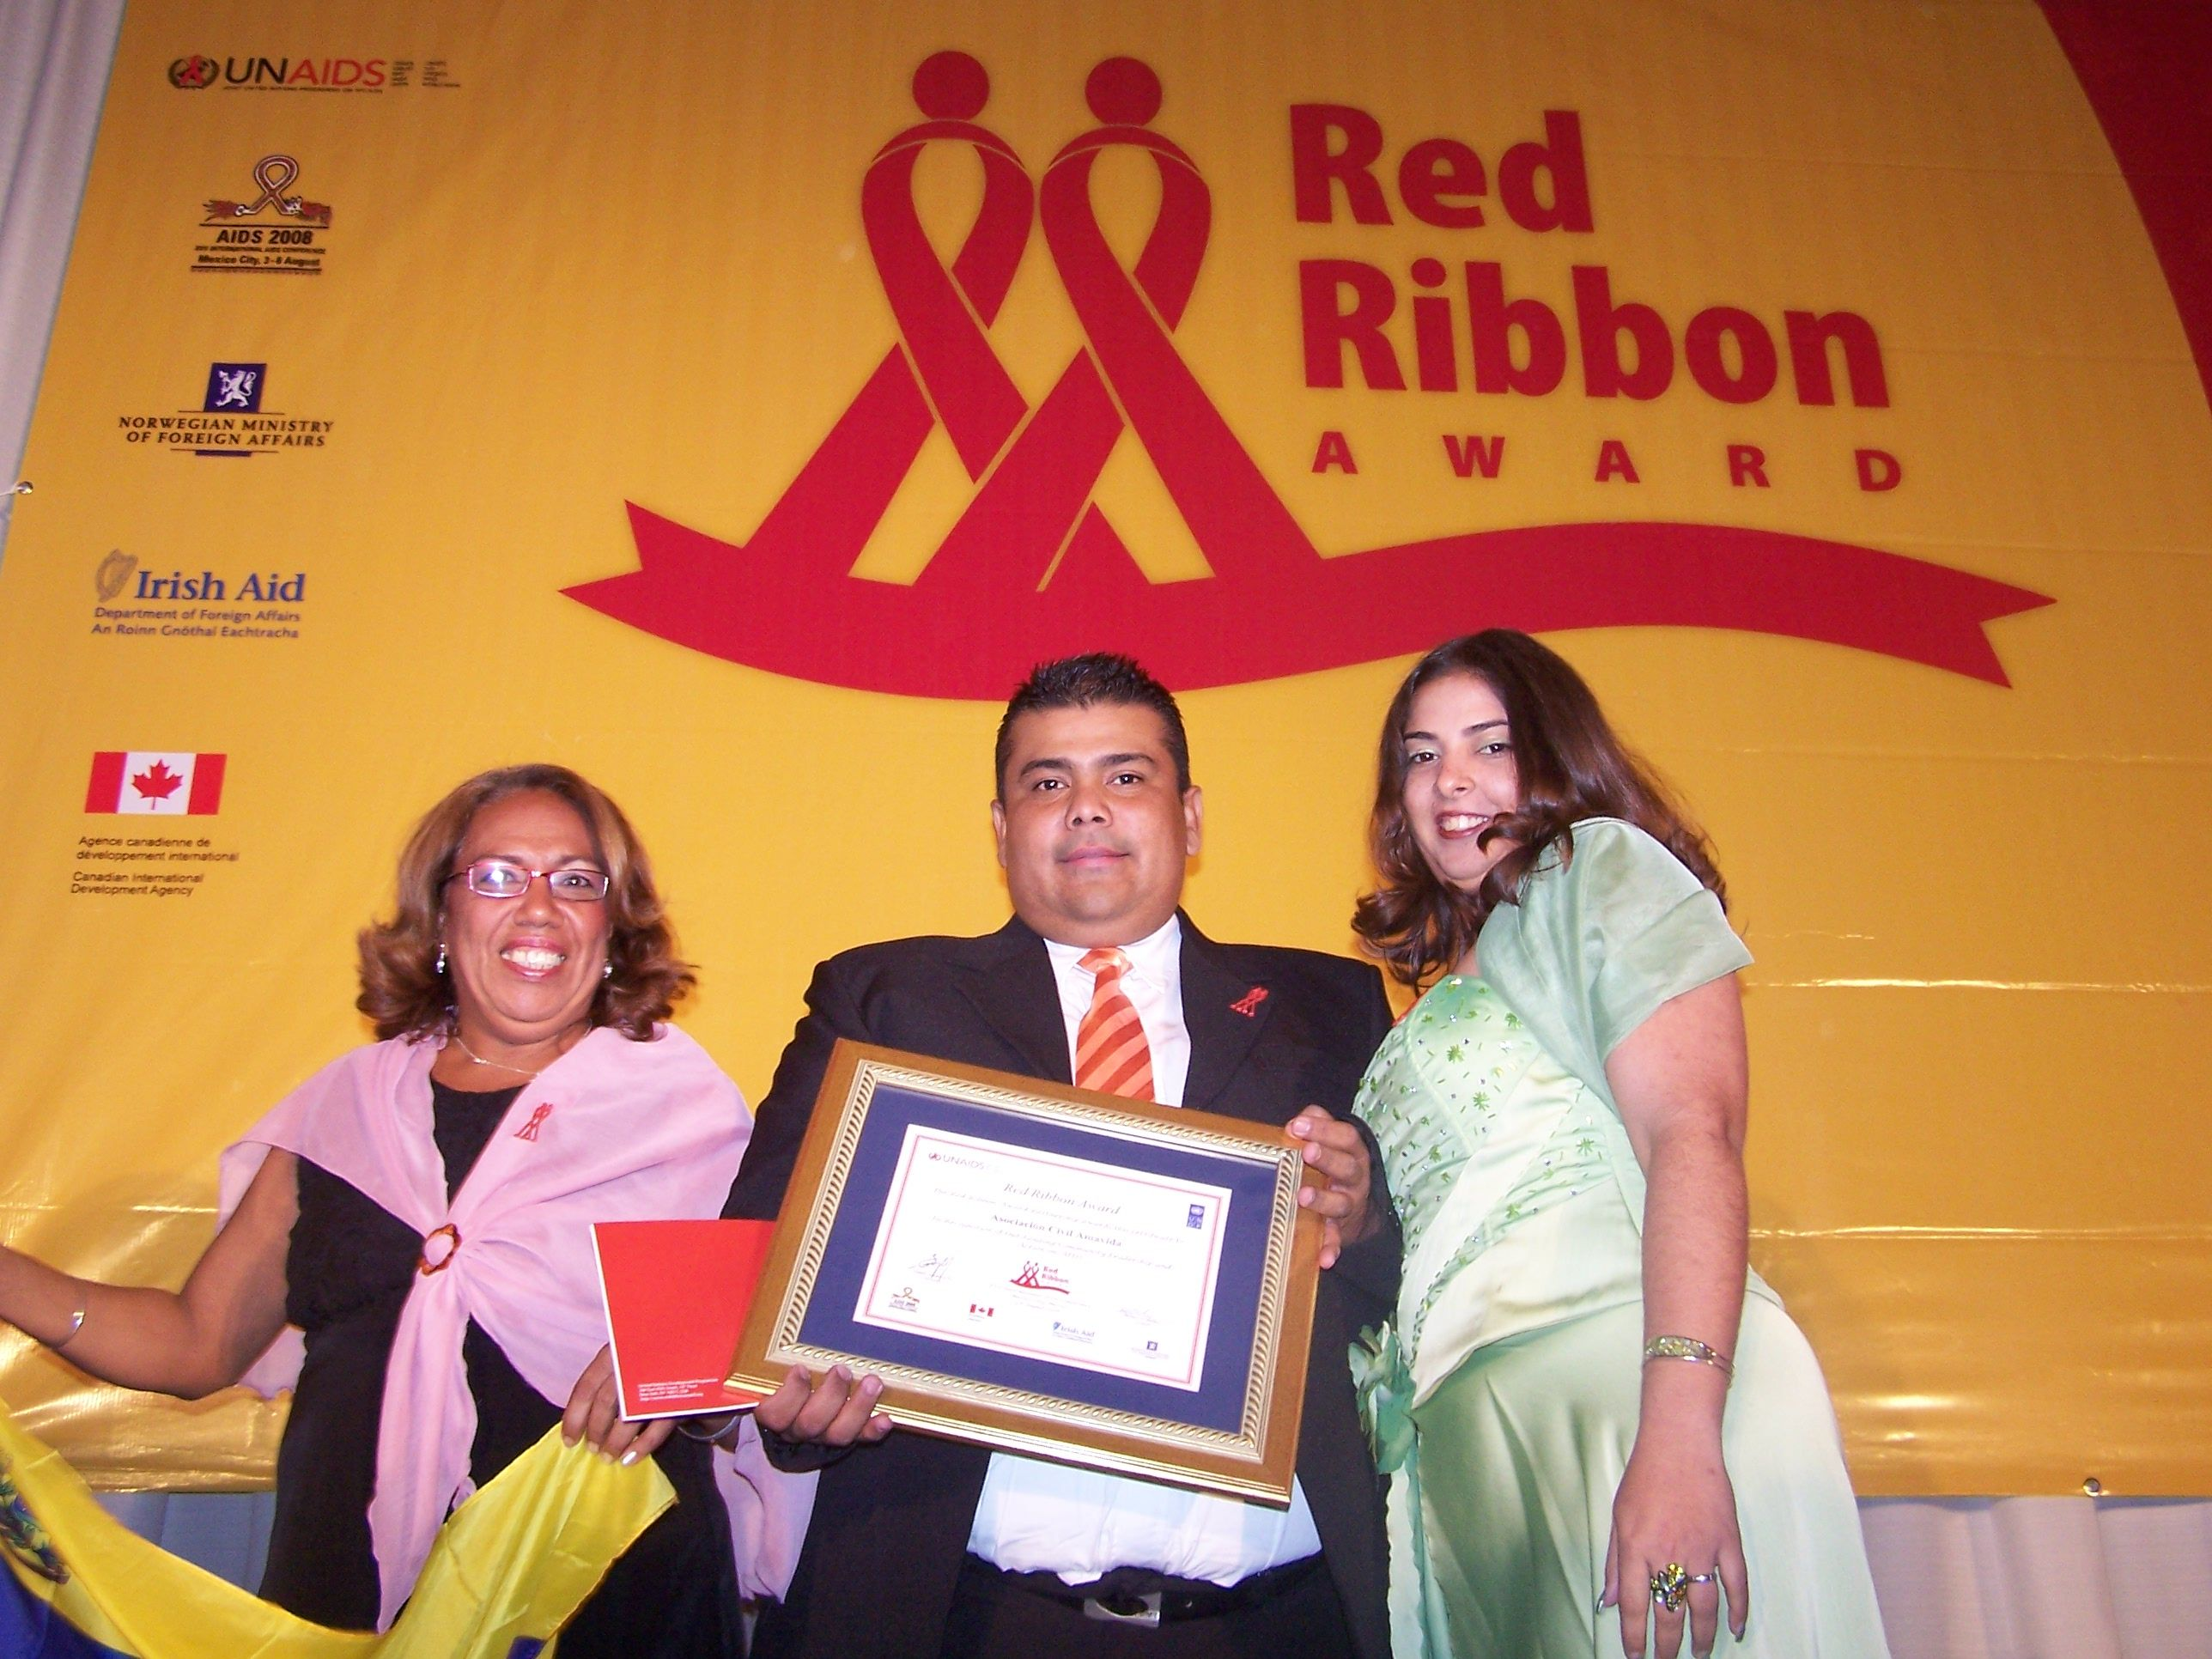 Red Ribbon Award 2008